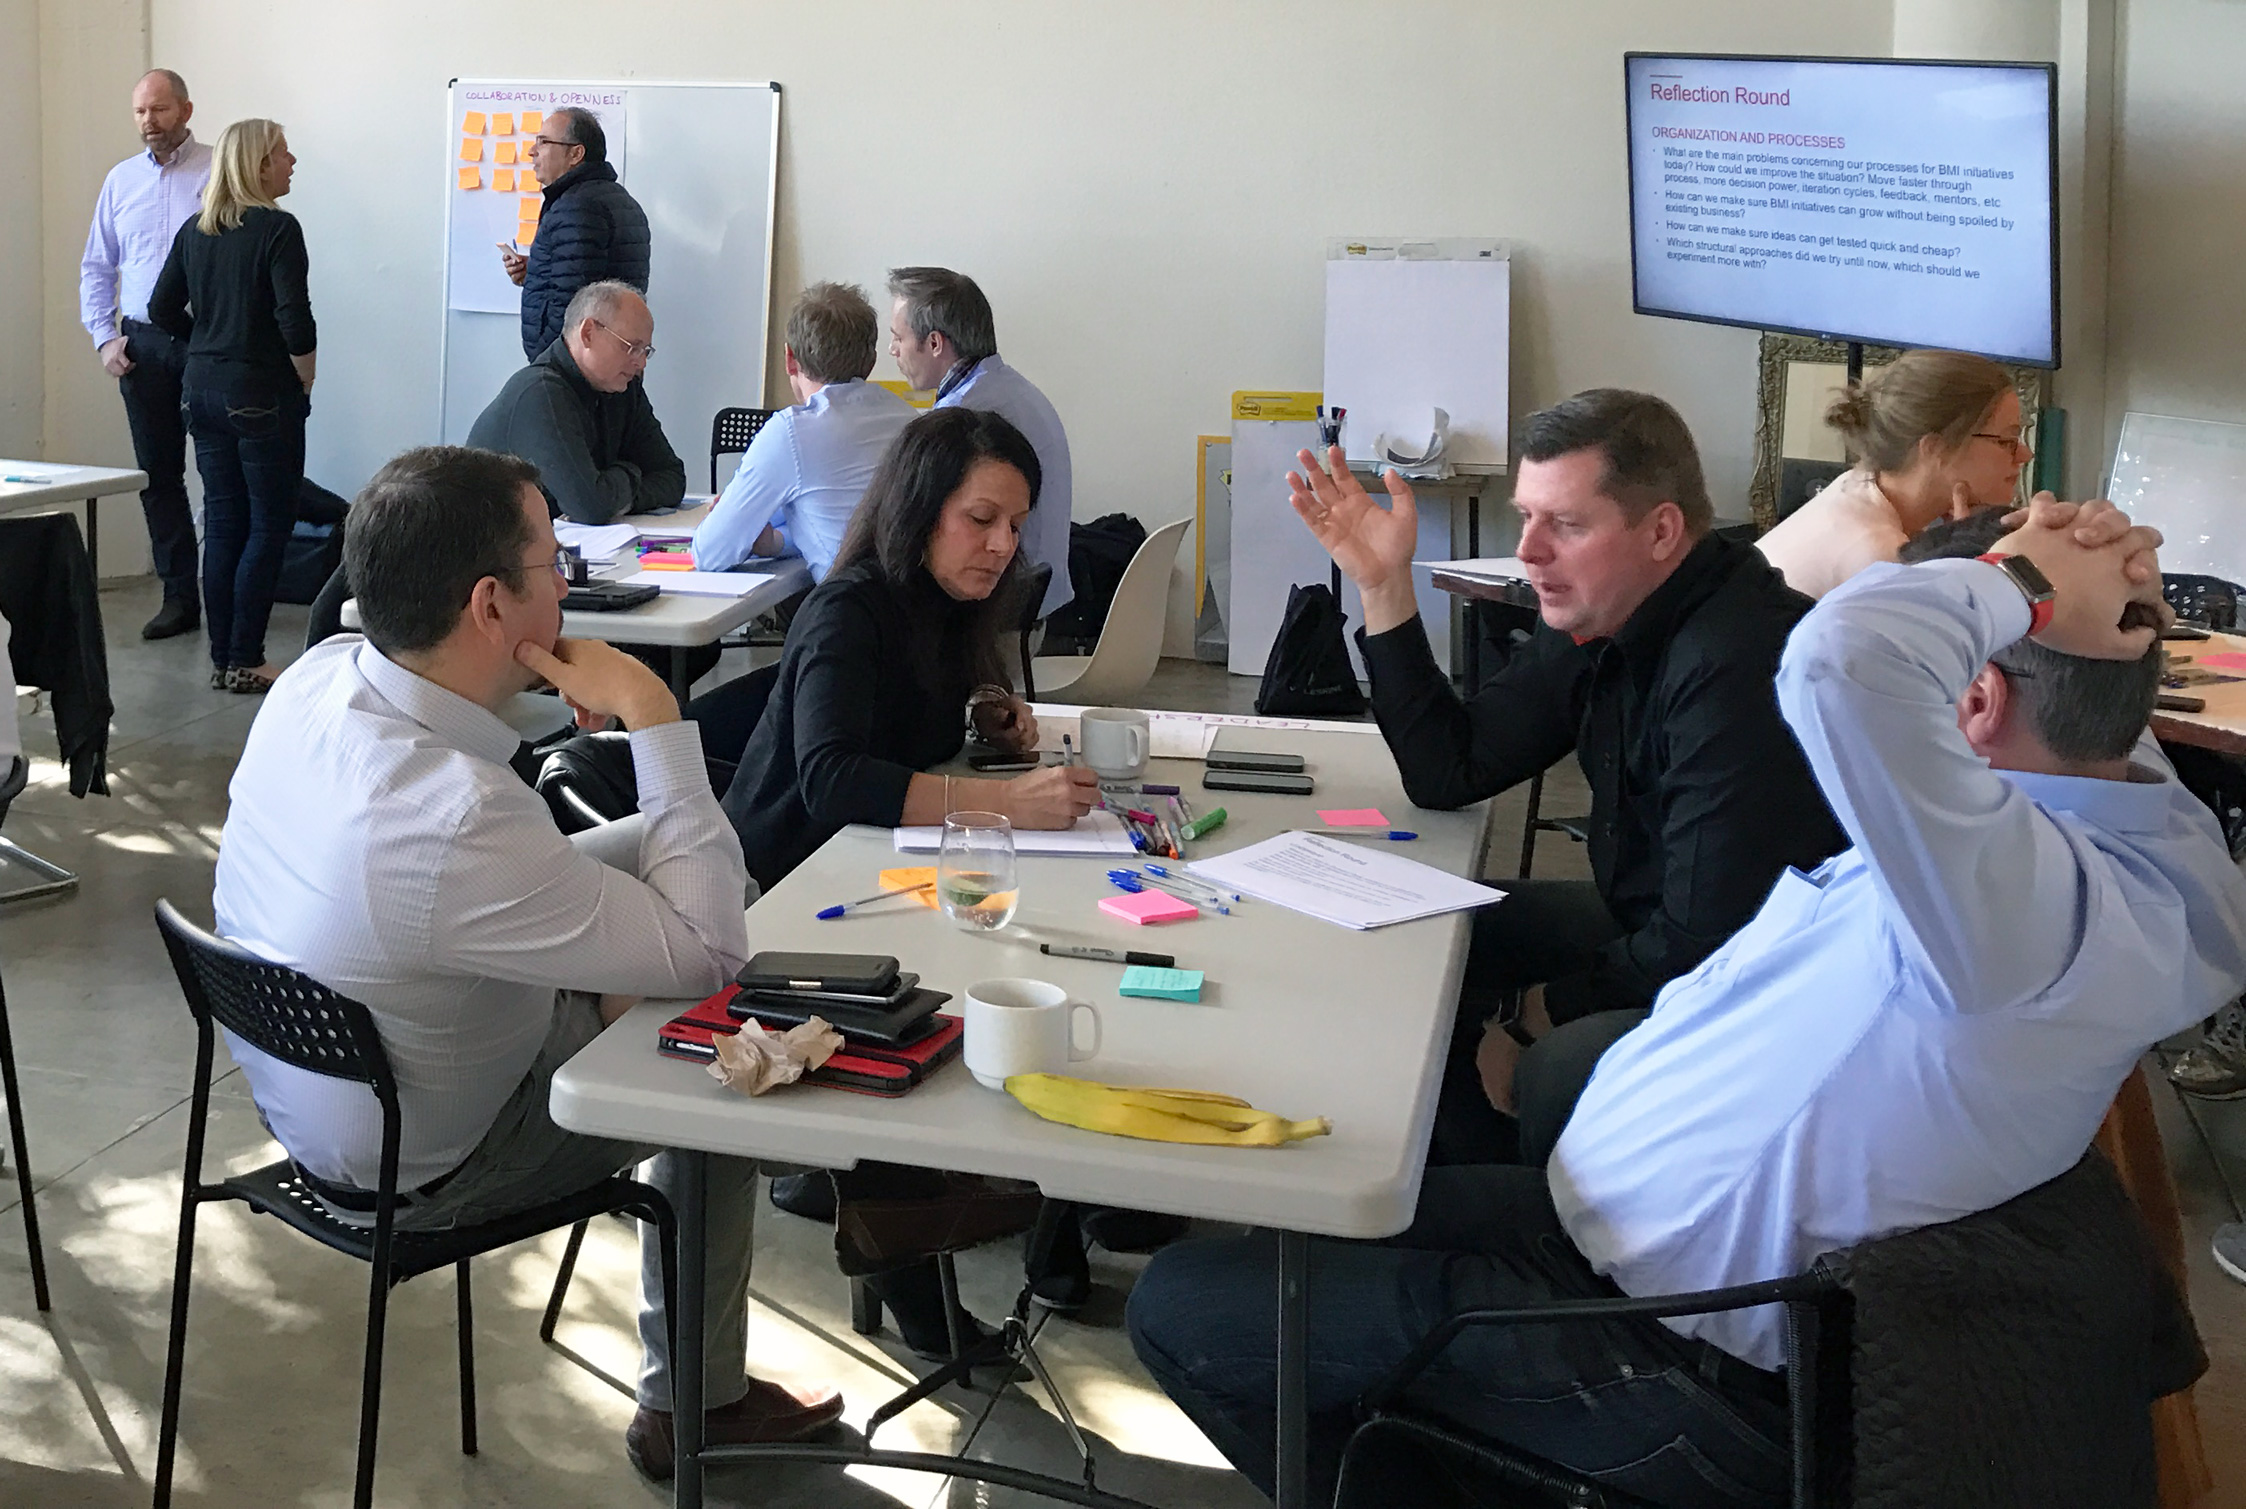 Group participants getting innovative.